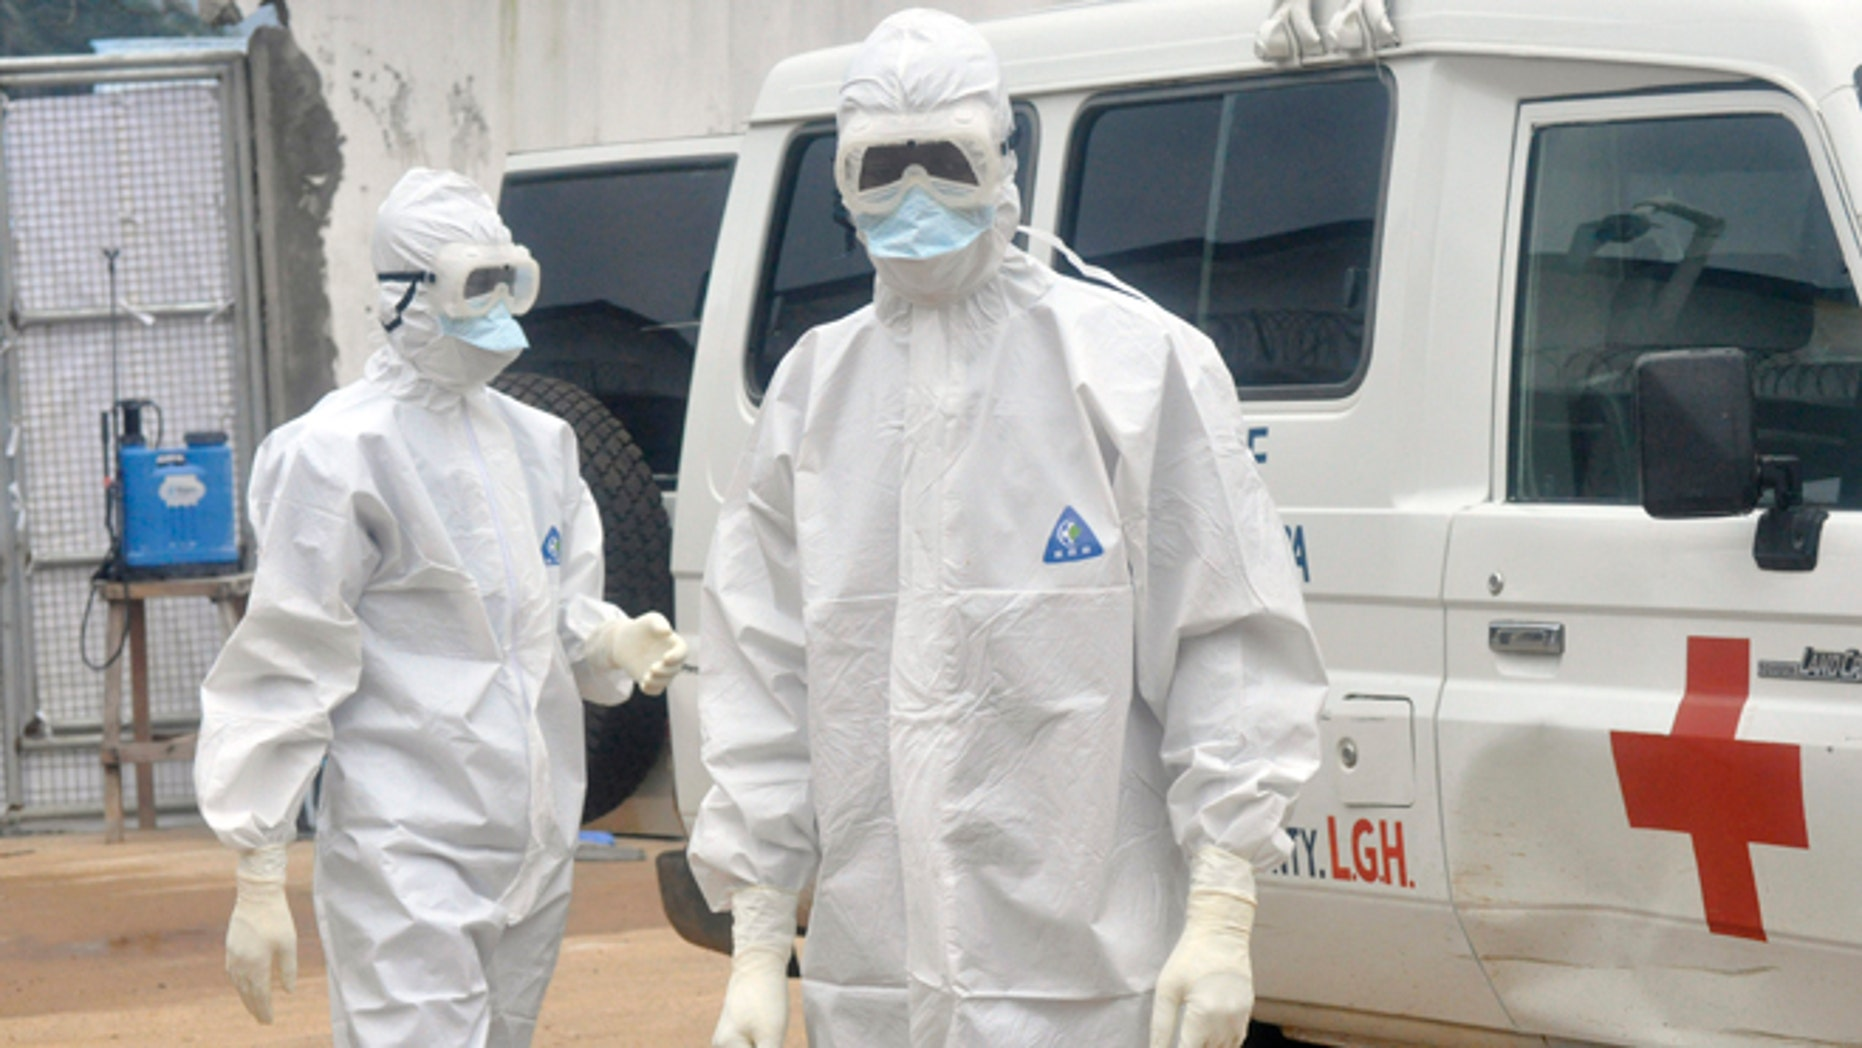 Health workers wearing protective gear wait to carry the body of a person suspected to have died from Ebola, in Monrovia, Liberia, Monday Oct. 13, 2014. Some nurses in Liberia defied calls for a strike on Monday and turned up for work at hospitals amid the worst Ebola outbreak in history. In view of the danger of their work, members of the National Health Workers Association are demanding higher monthly hazard pay. The association has more than 10,000 members, though the health ministry says only about 1,000 of those are employed at sites receiving Ebola patients. (AP Photo/Abbas Dulleh)